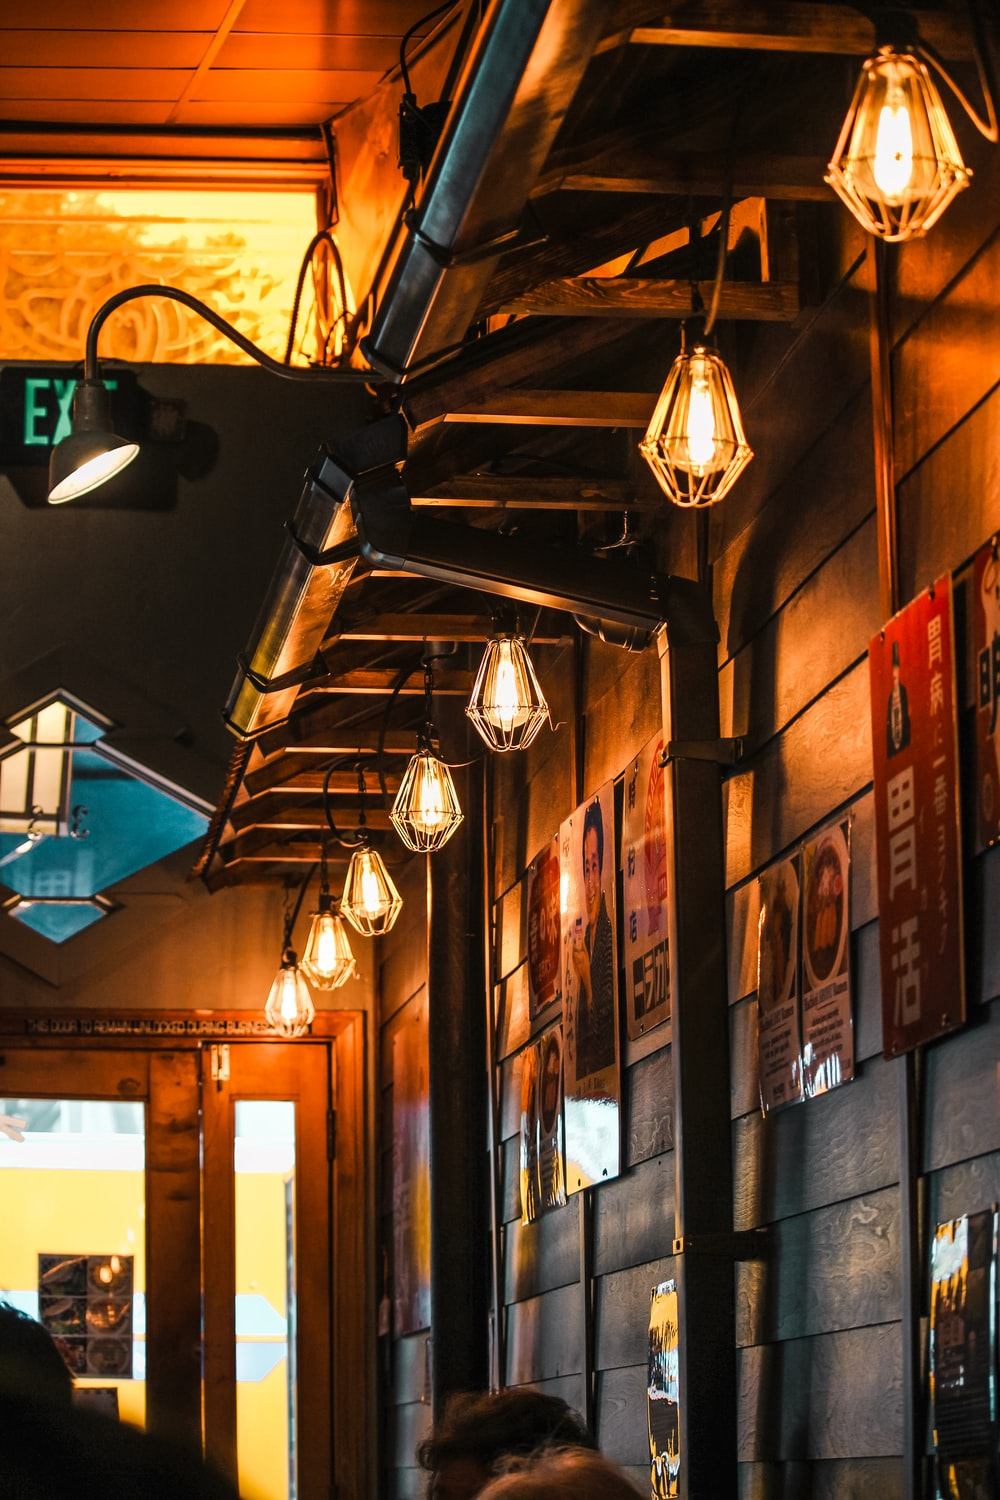 lighted pendant lamps inside building